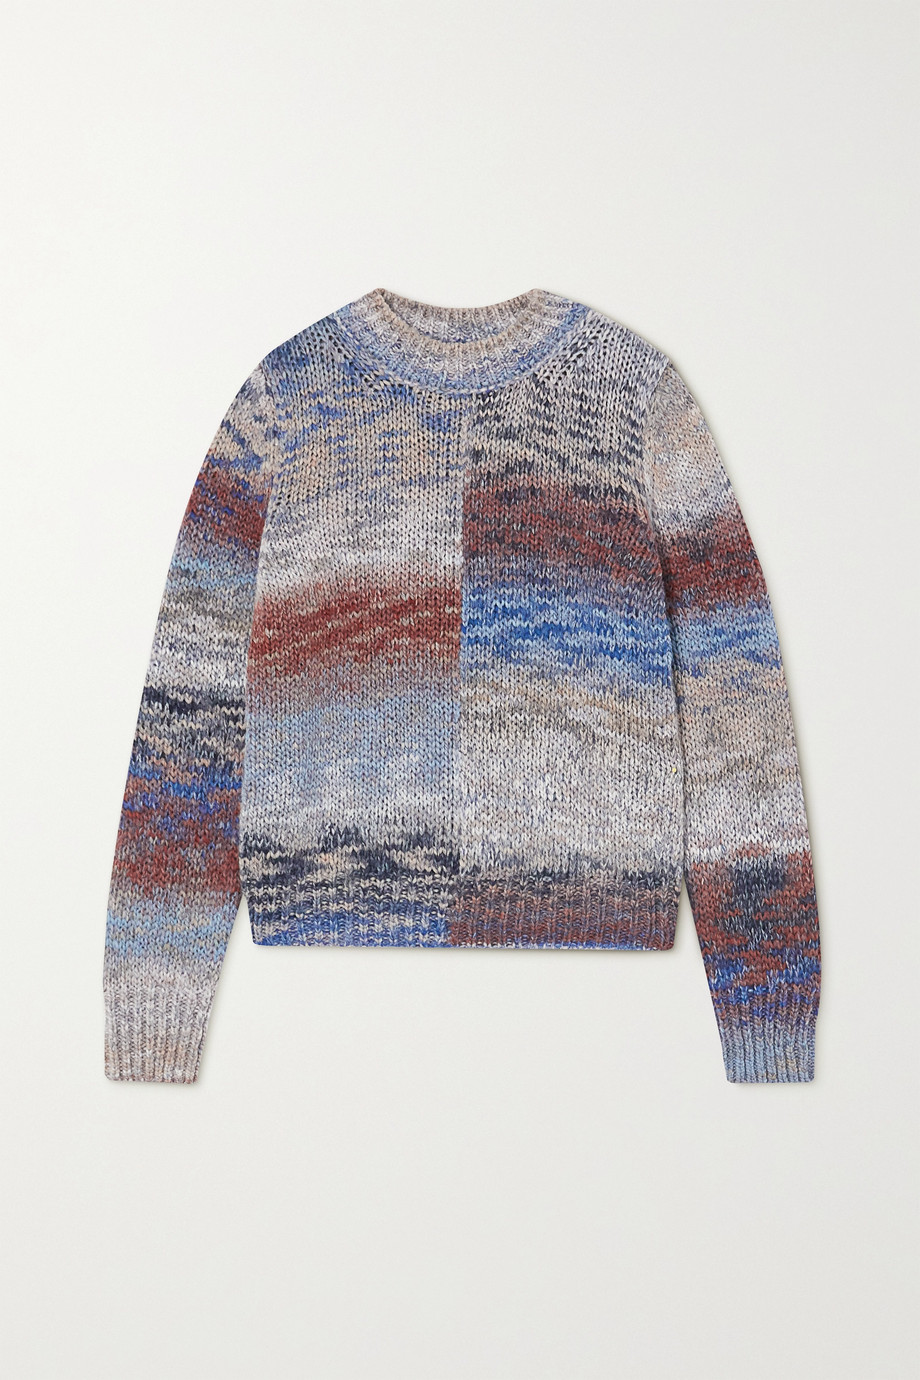 Vanessa Bruno Mélange knitted sweater